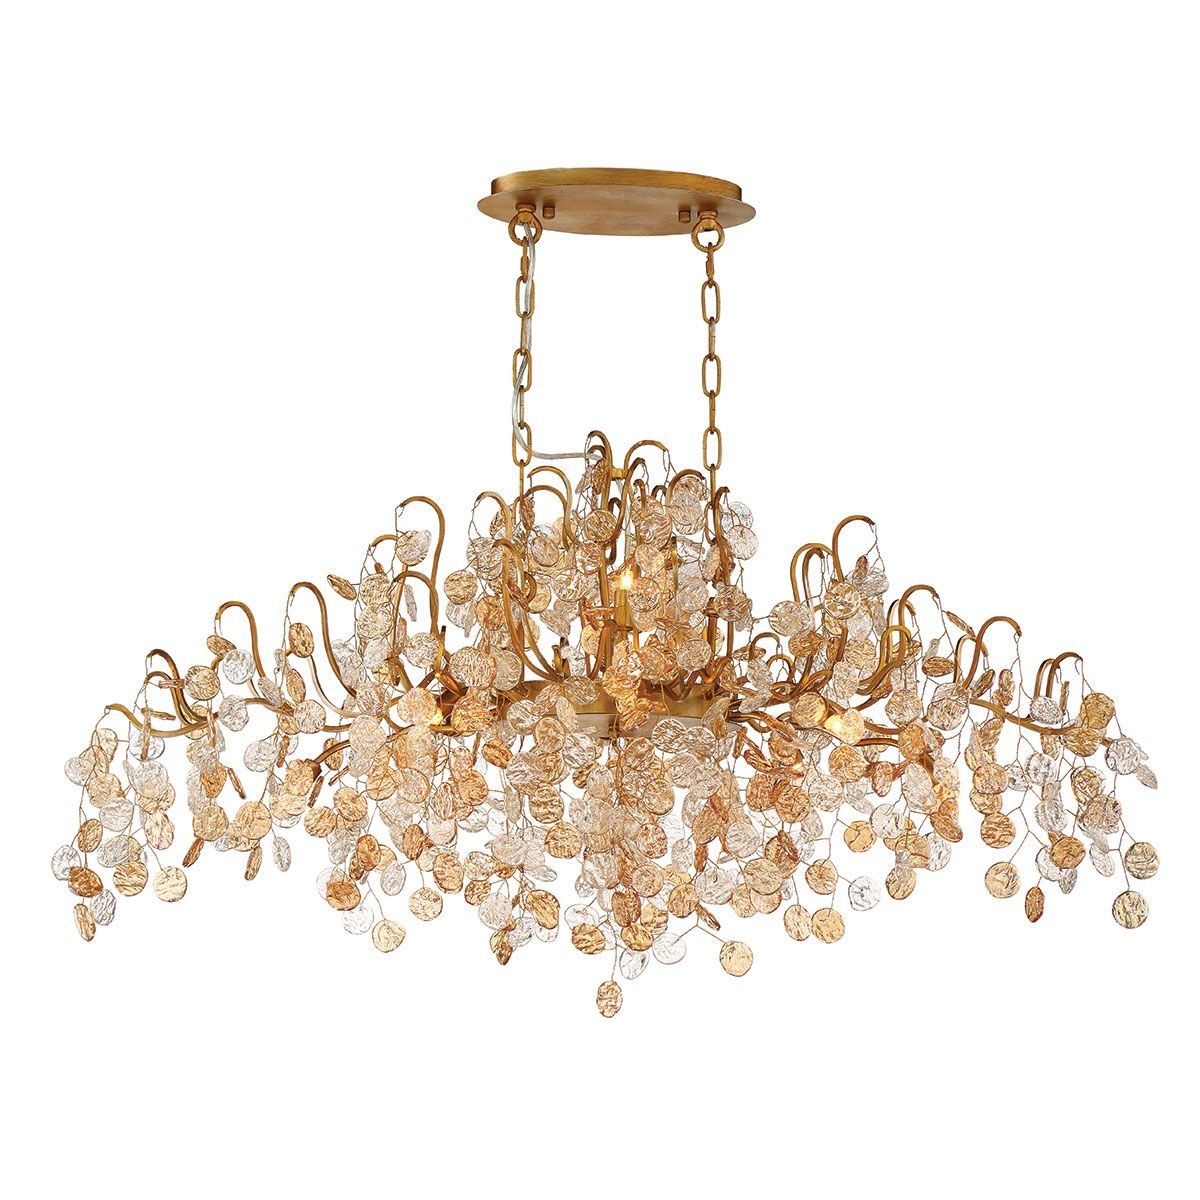 campobasso 10 light oval chandelier by eurofase 29061 013